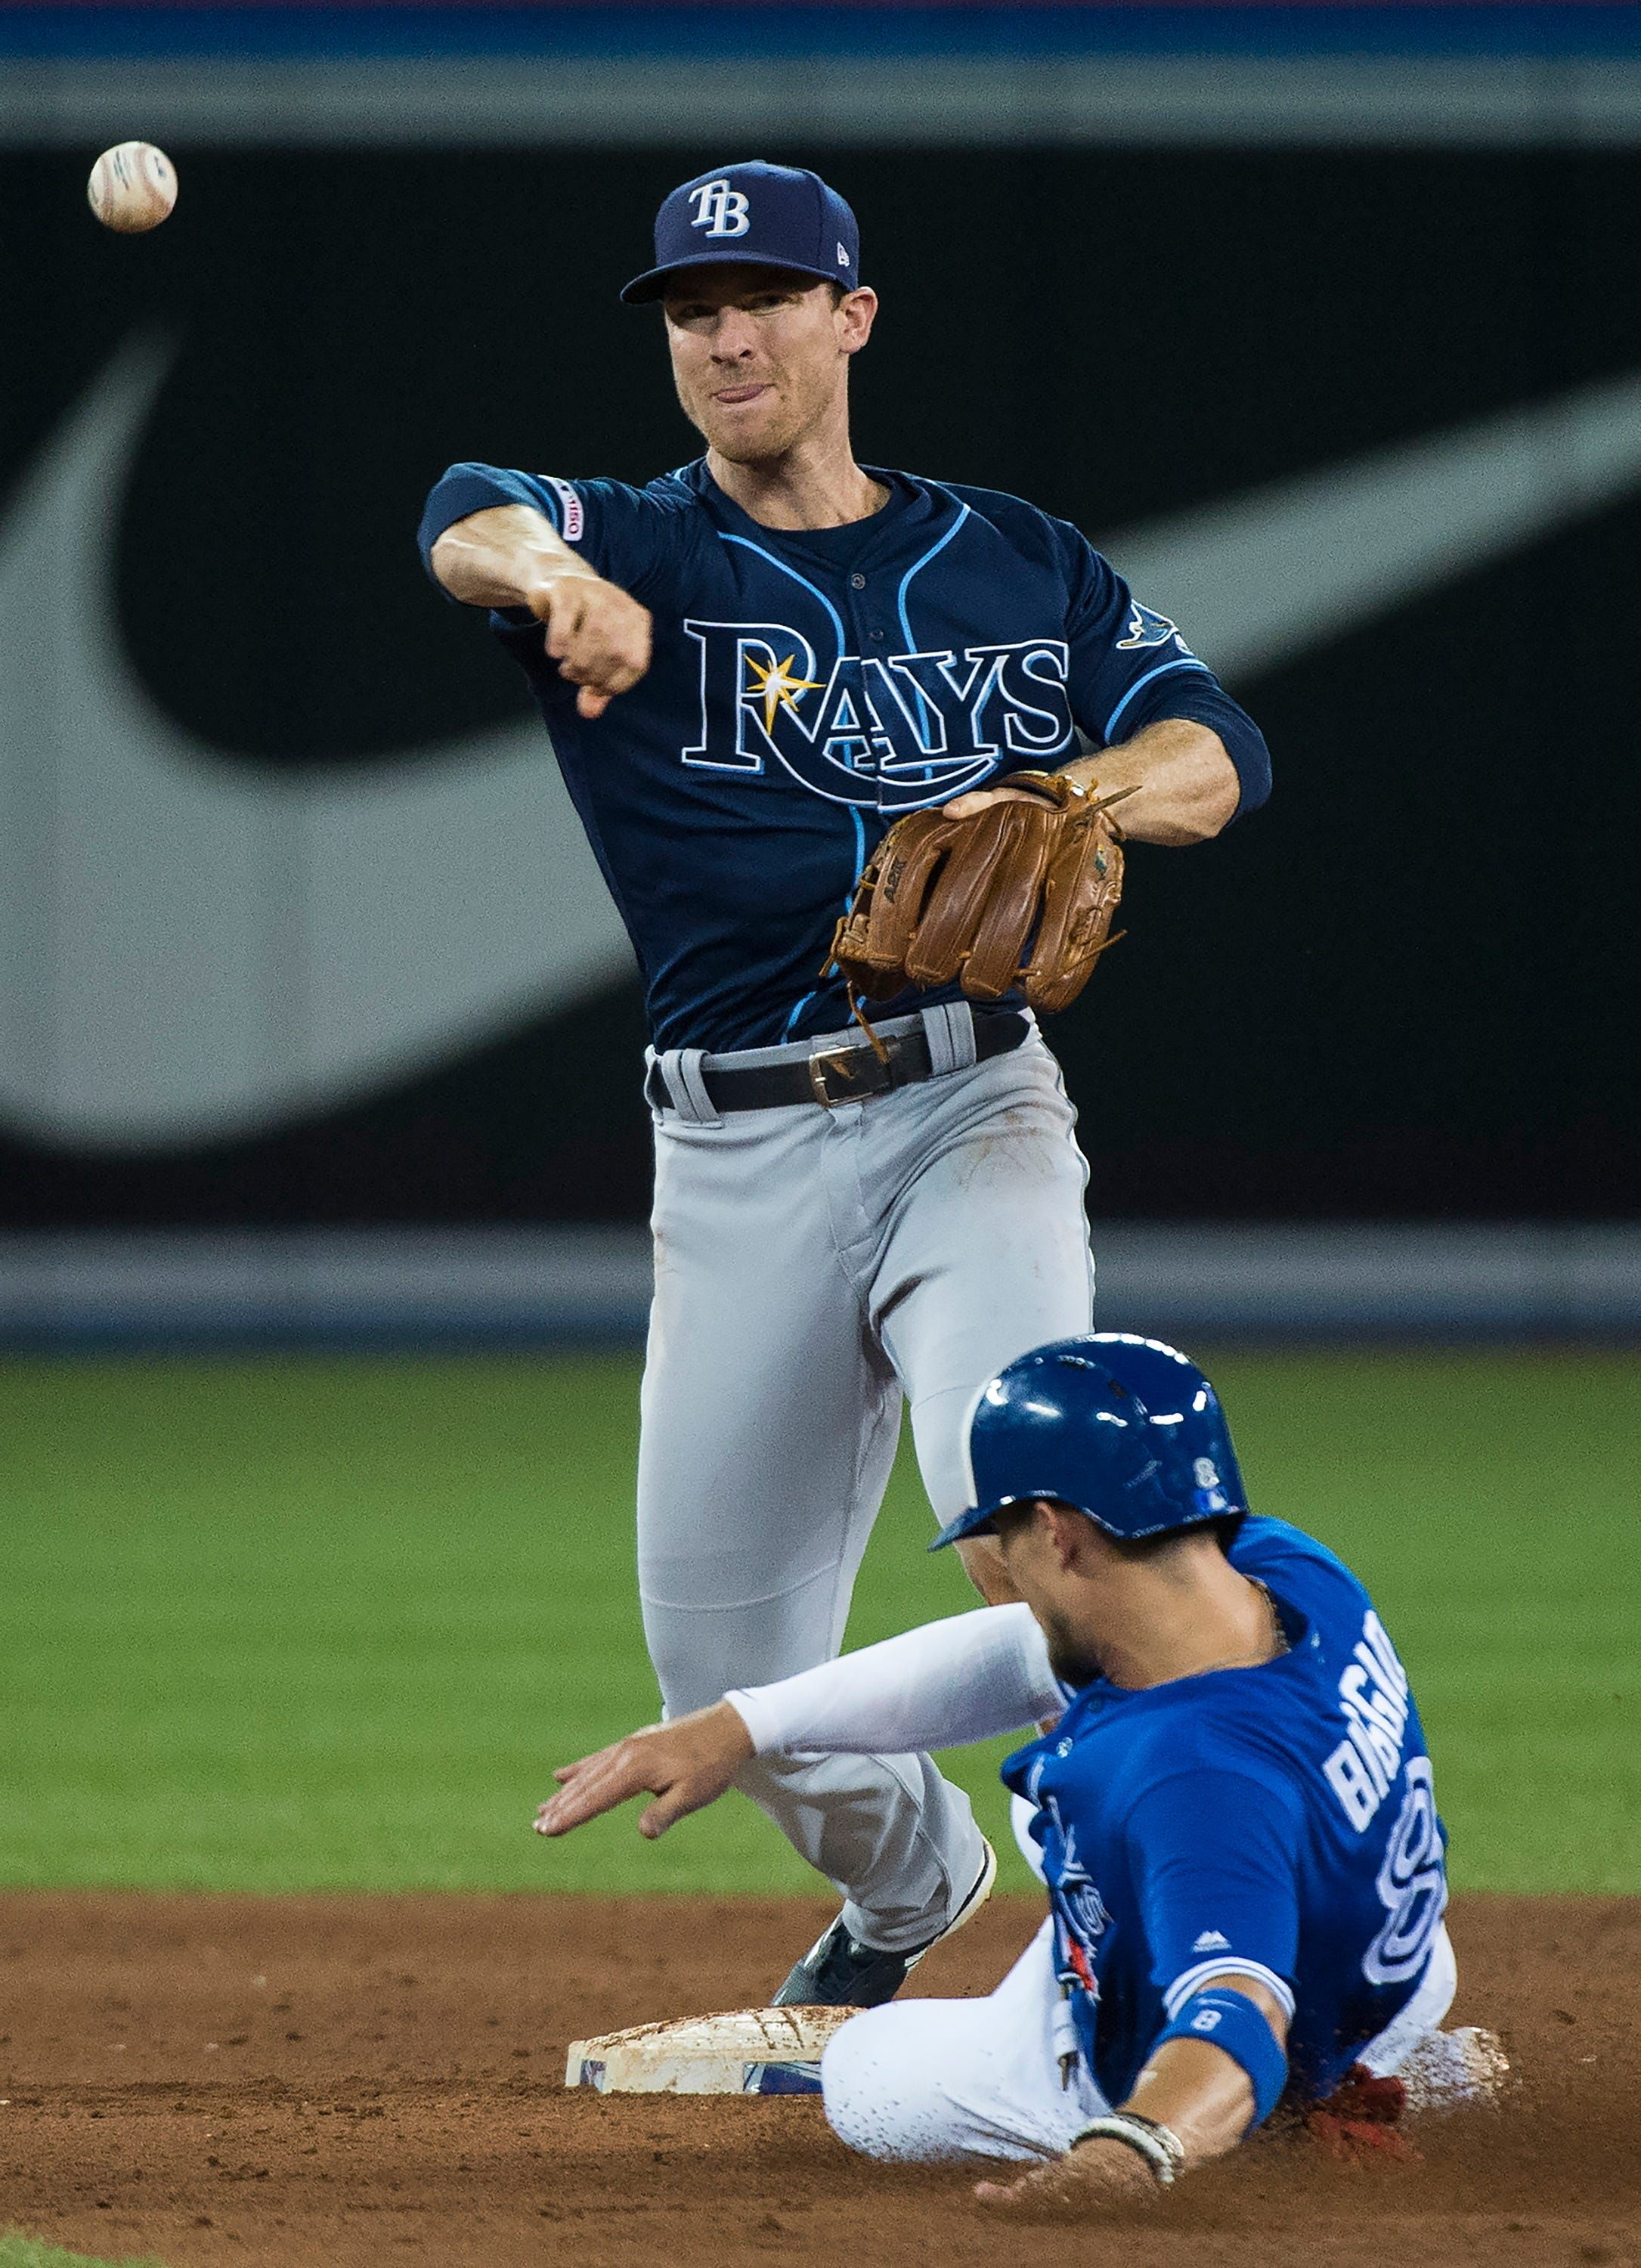 Rays rally from 7run deficit to beat Blue Jays 109